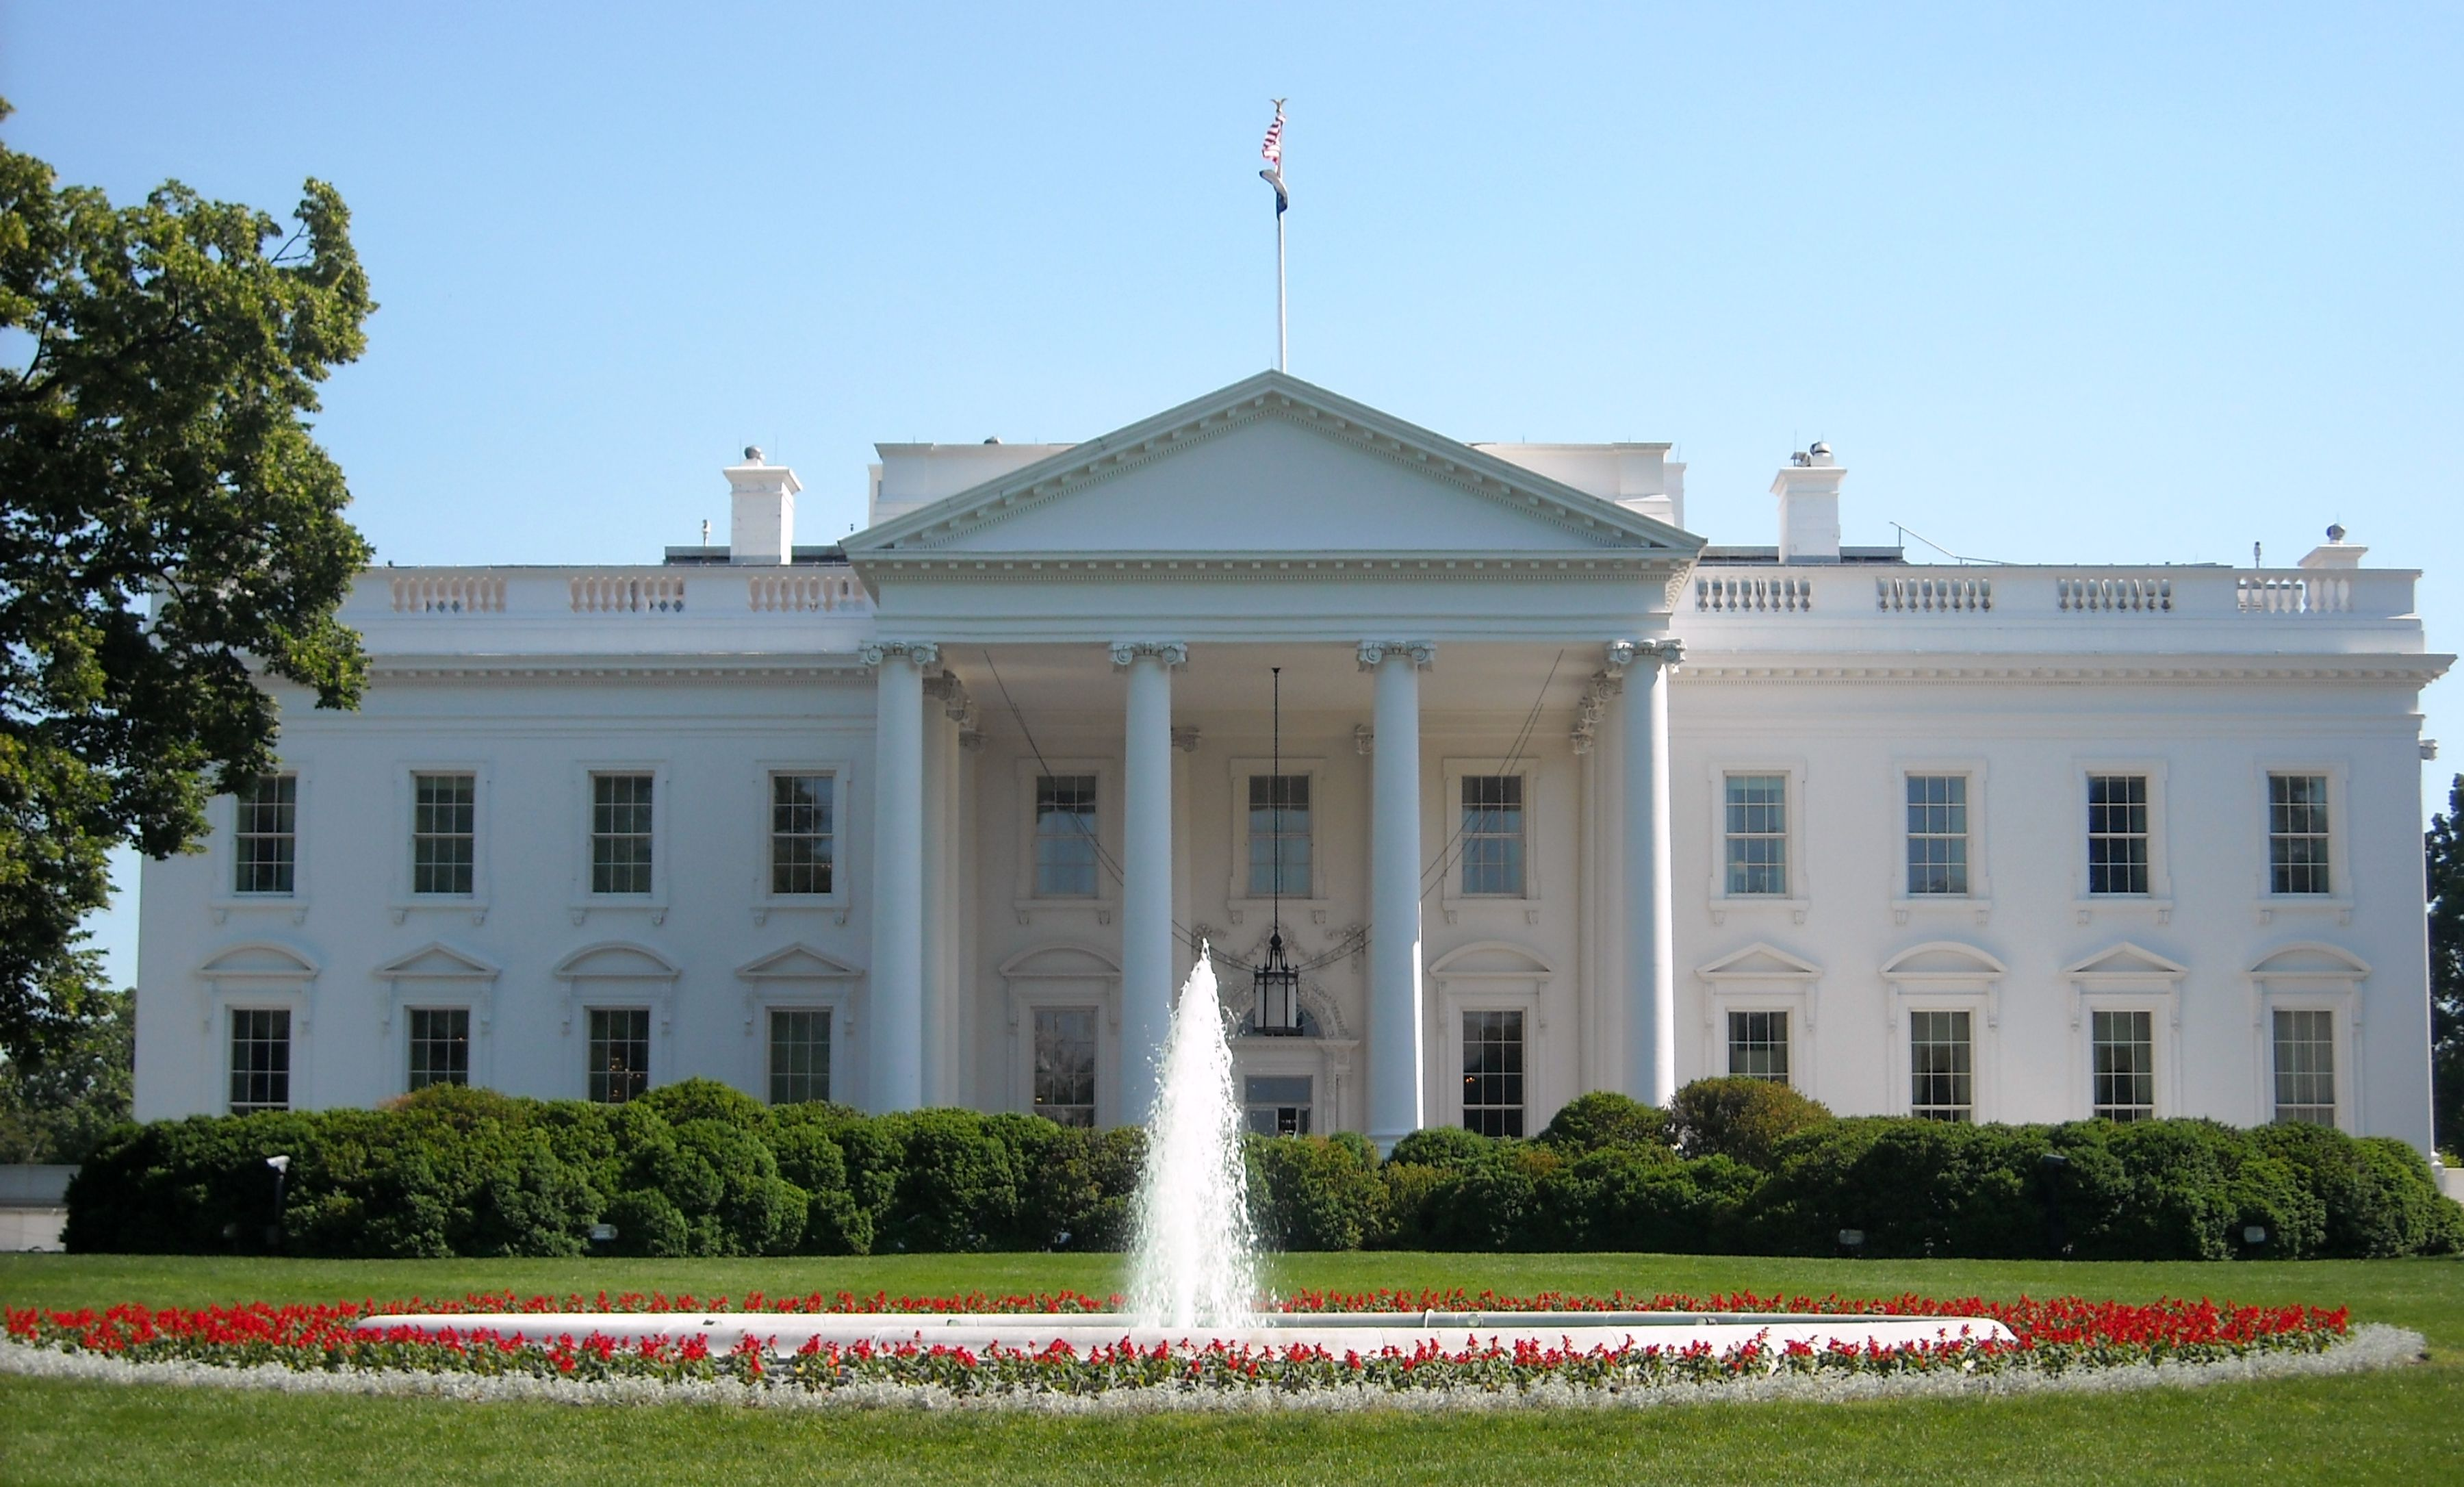 Official Website of the White House